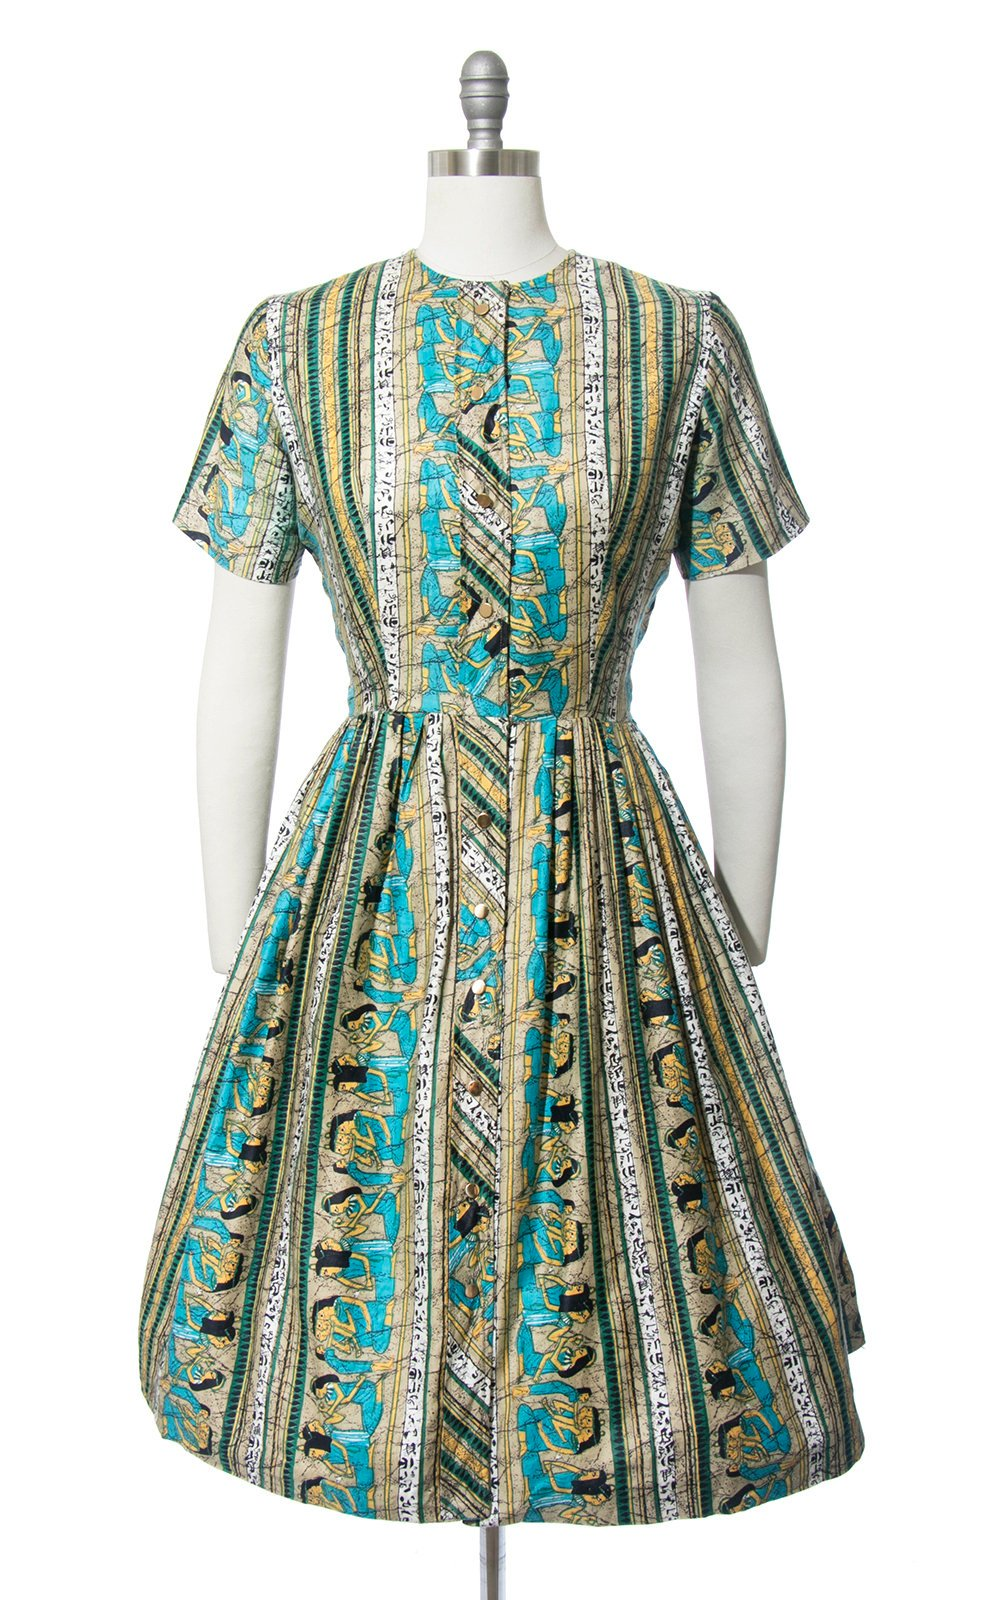 Vintage 1950s 1960s Dress | 50s 60s Egyptian Novelty Print Cotton Shirt Dress Full Skirt Shirtwaist Day Dress (medium/large)